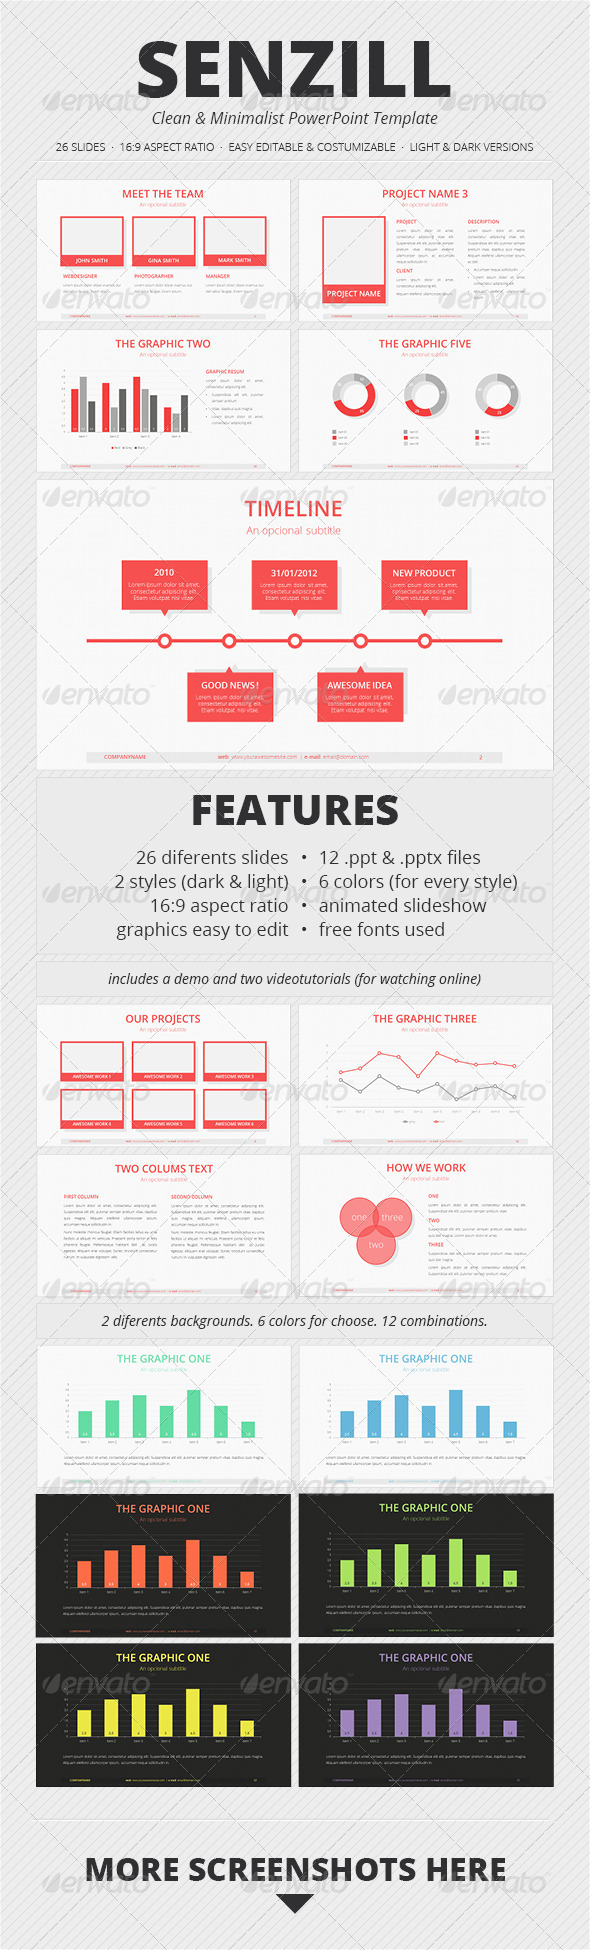 Yellow Ruler 02 - PowerPoint Templates